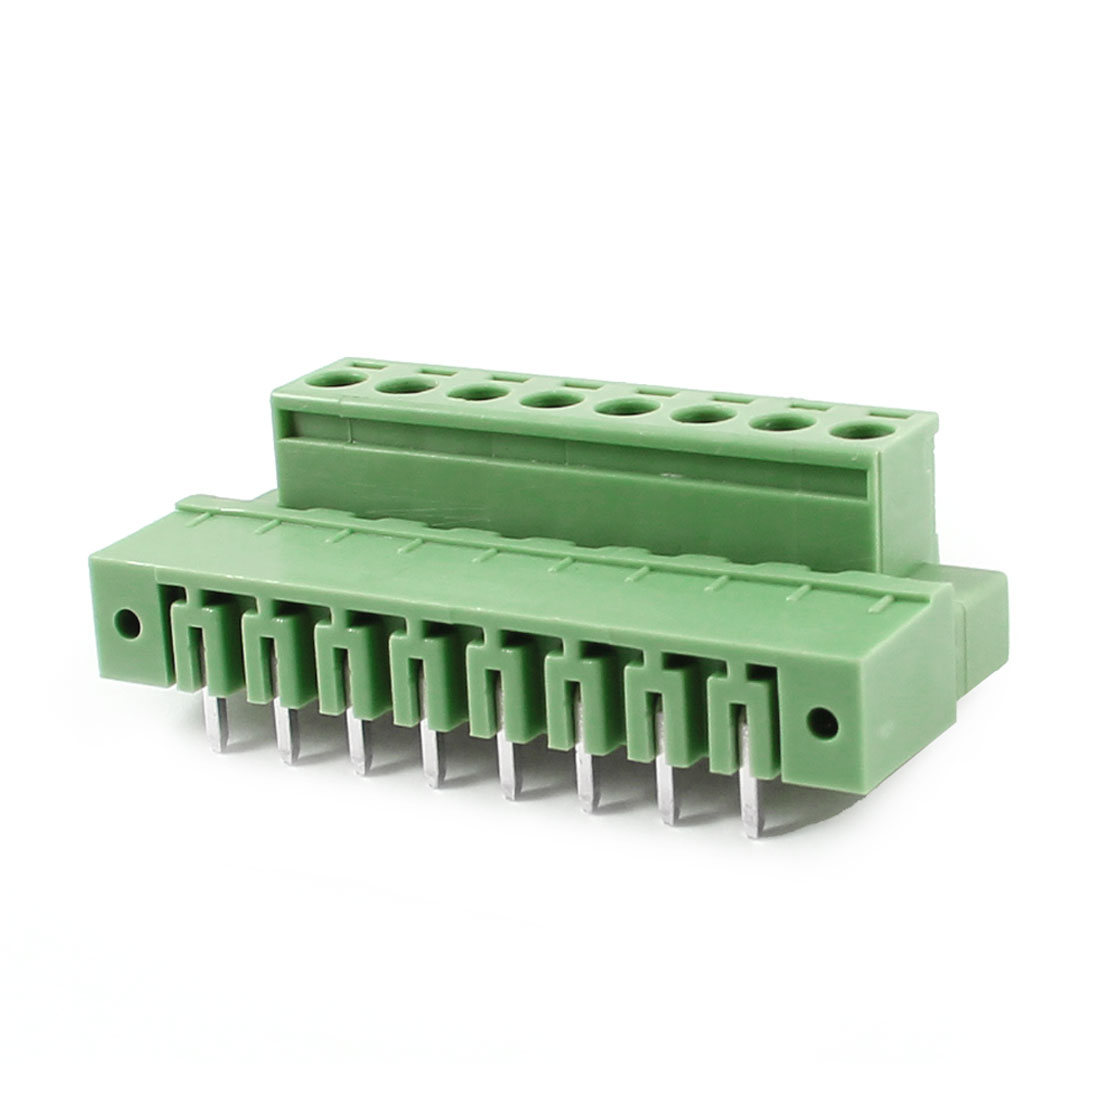 Pair AC 300V 10A 5.08mm Spacing 8 Pin Screw Pluggable Terminal Block